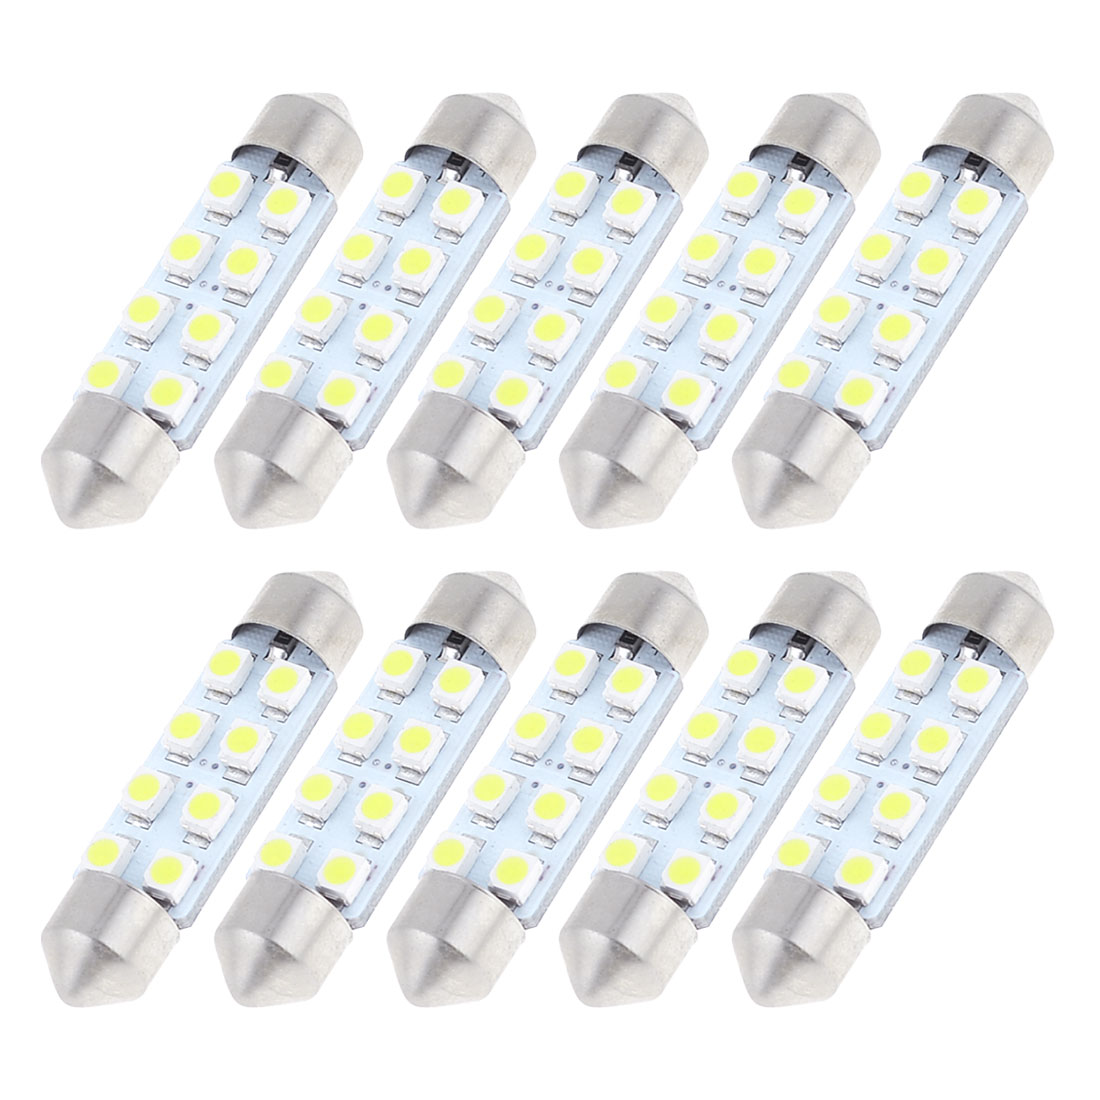 10 Pcs 41mm 8-SMD 1210 White Festoon Dome Light LED Bulbs 211-2 212-2 569 6429